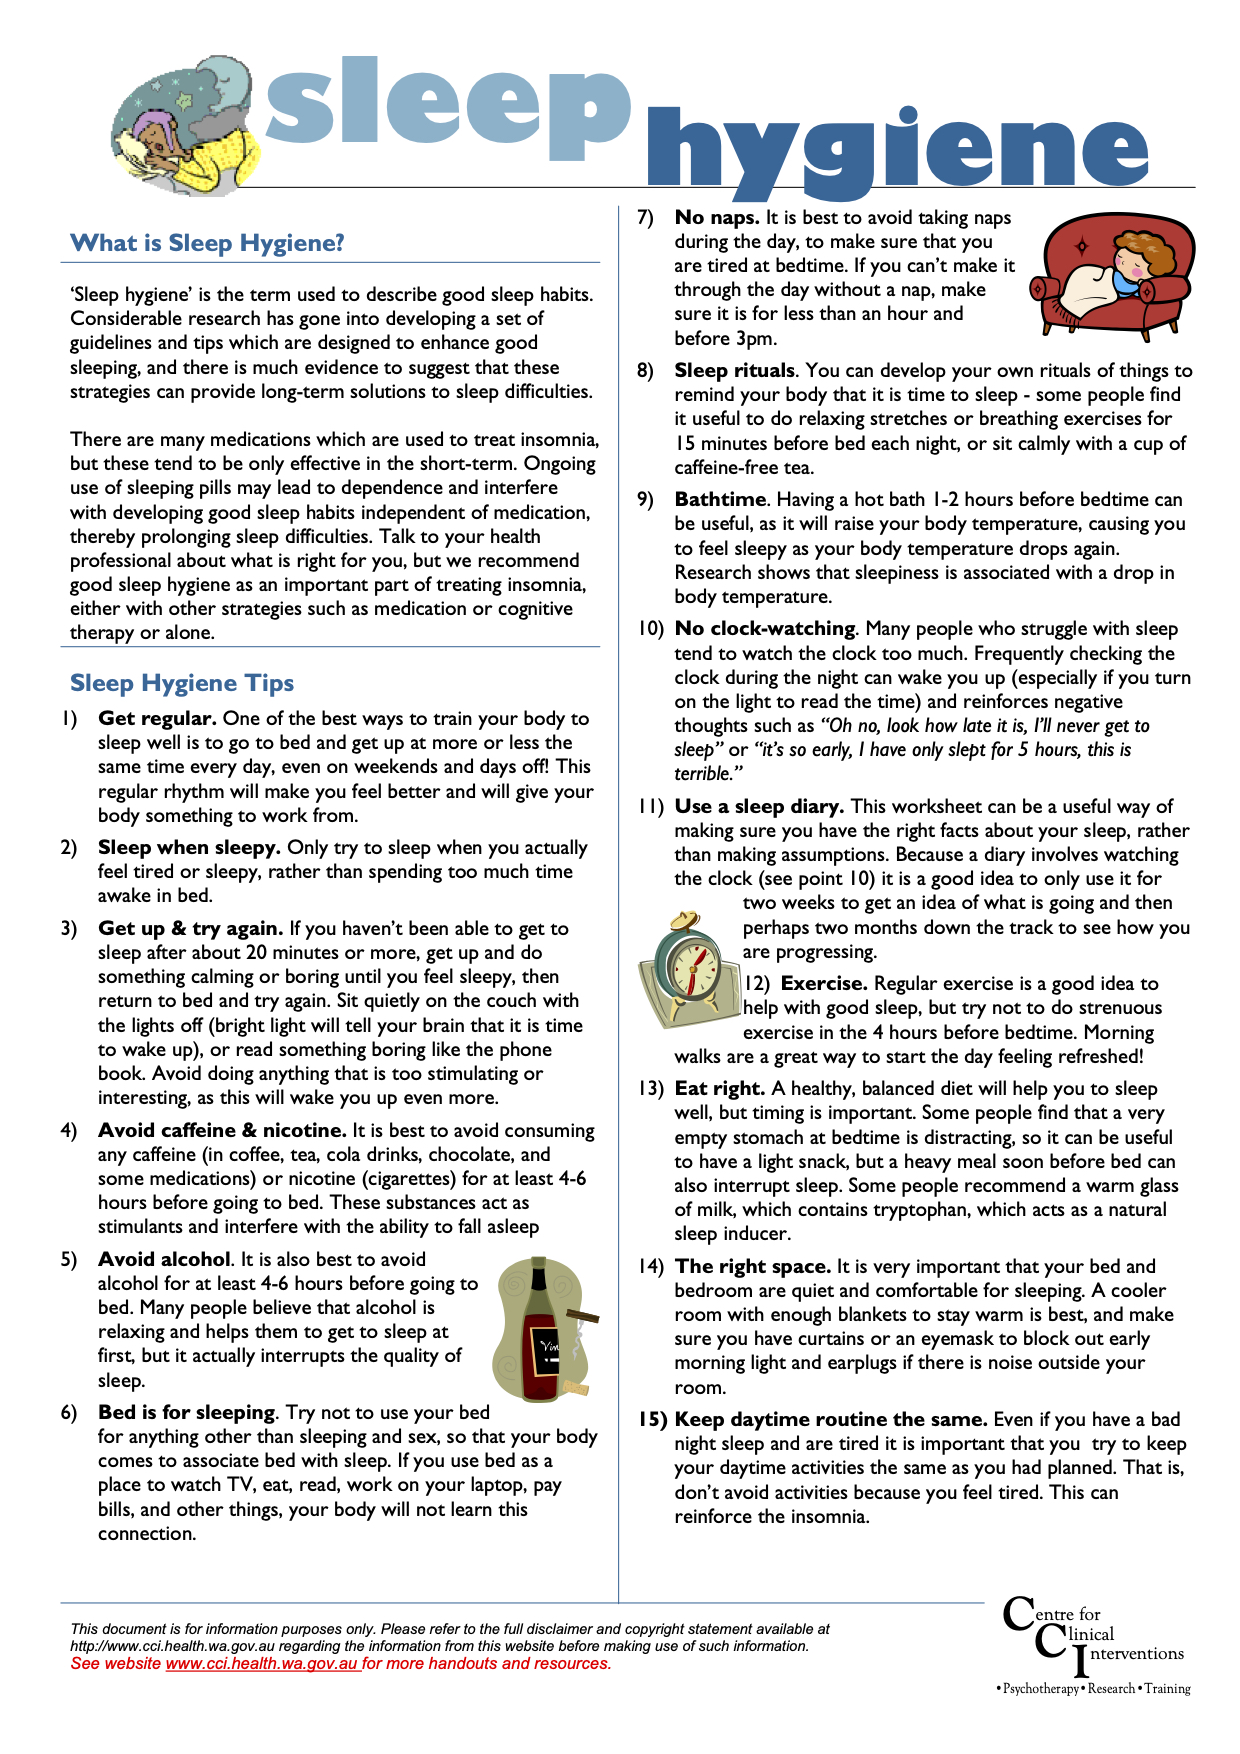 sleep information sheet - 04 - sleep hygiene